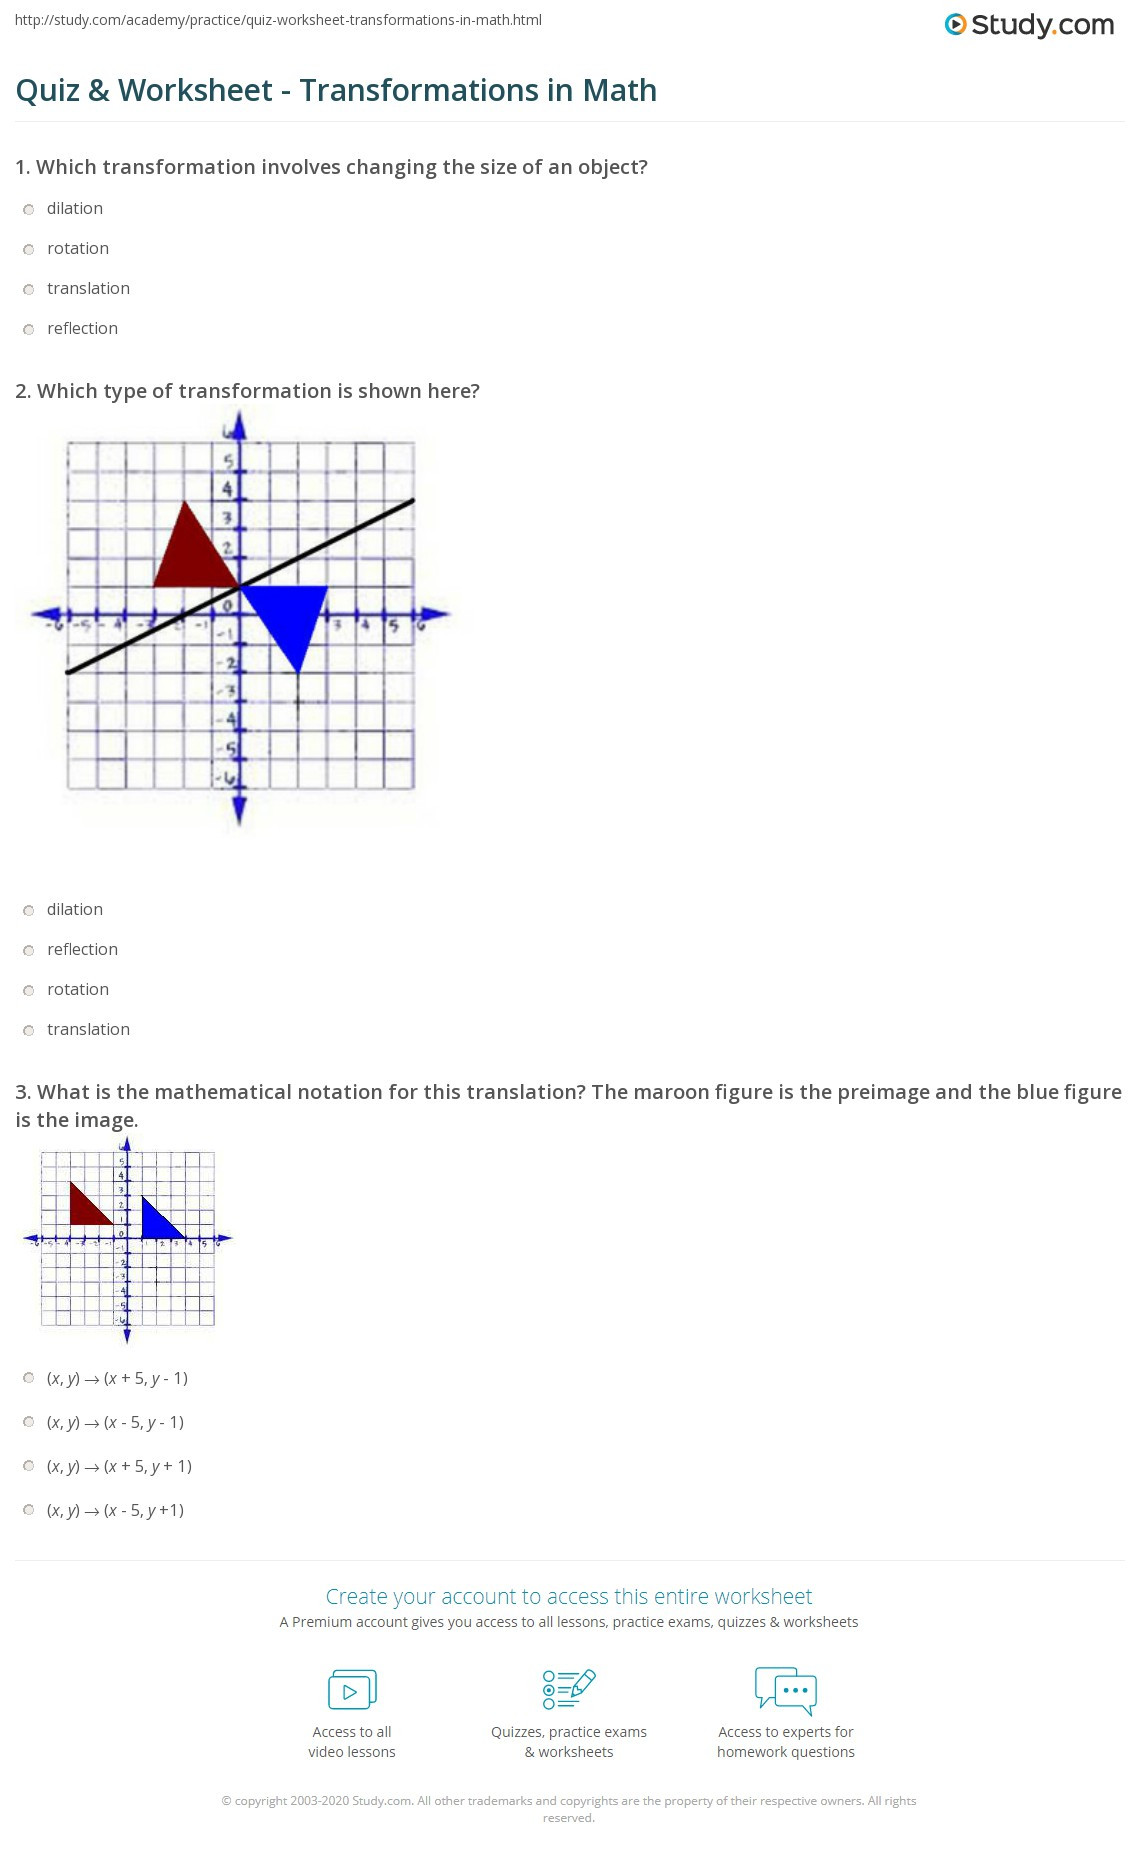 Translations Worksheets Math Quiz & Worksheet Transformations In Math